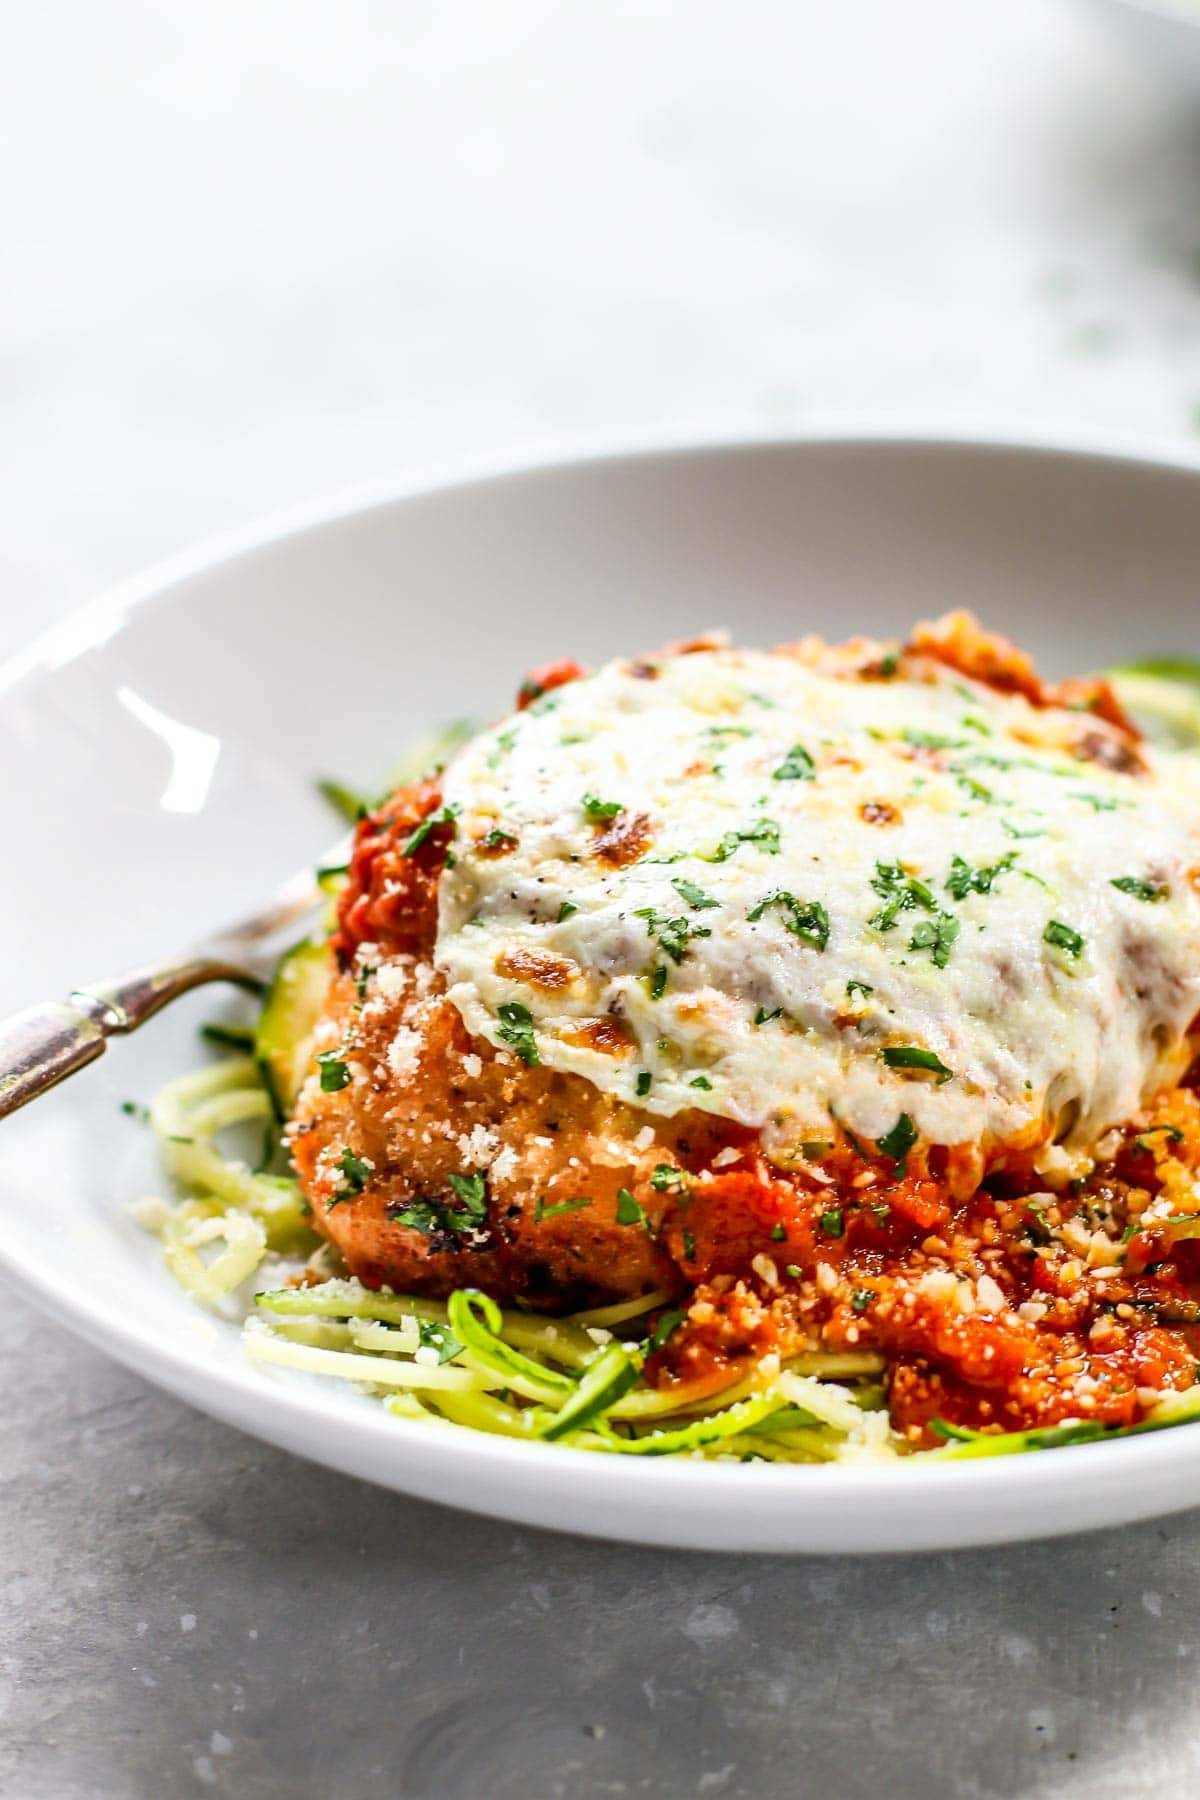 Chicken Parmesan on a white plate.